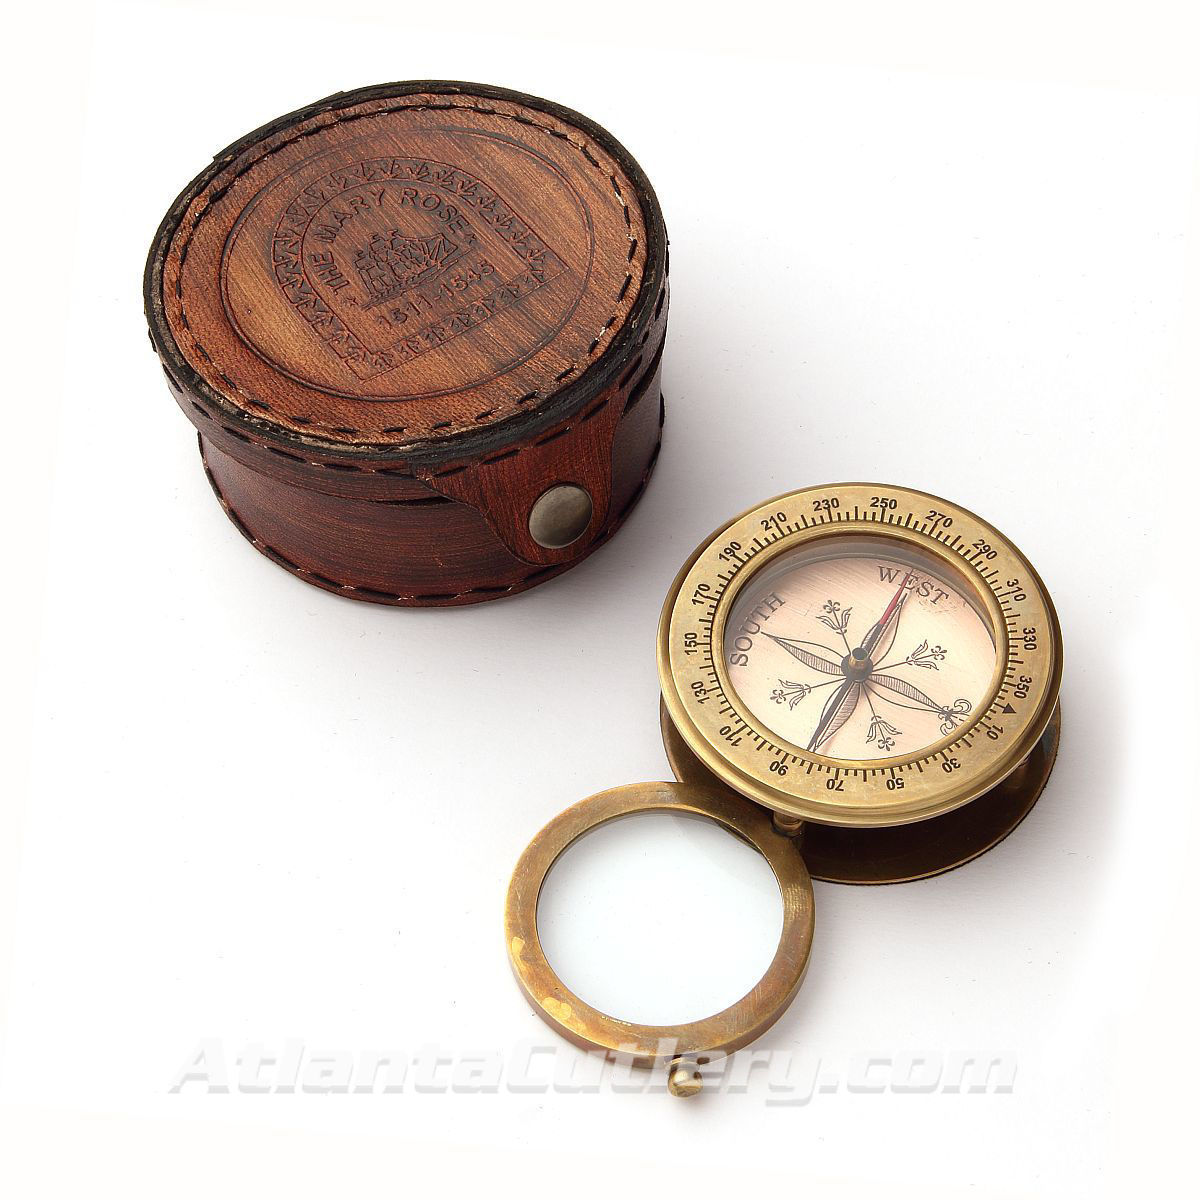 Mary Rose Commemorative Compass Magnifier in Embossed Faux Leather Case